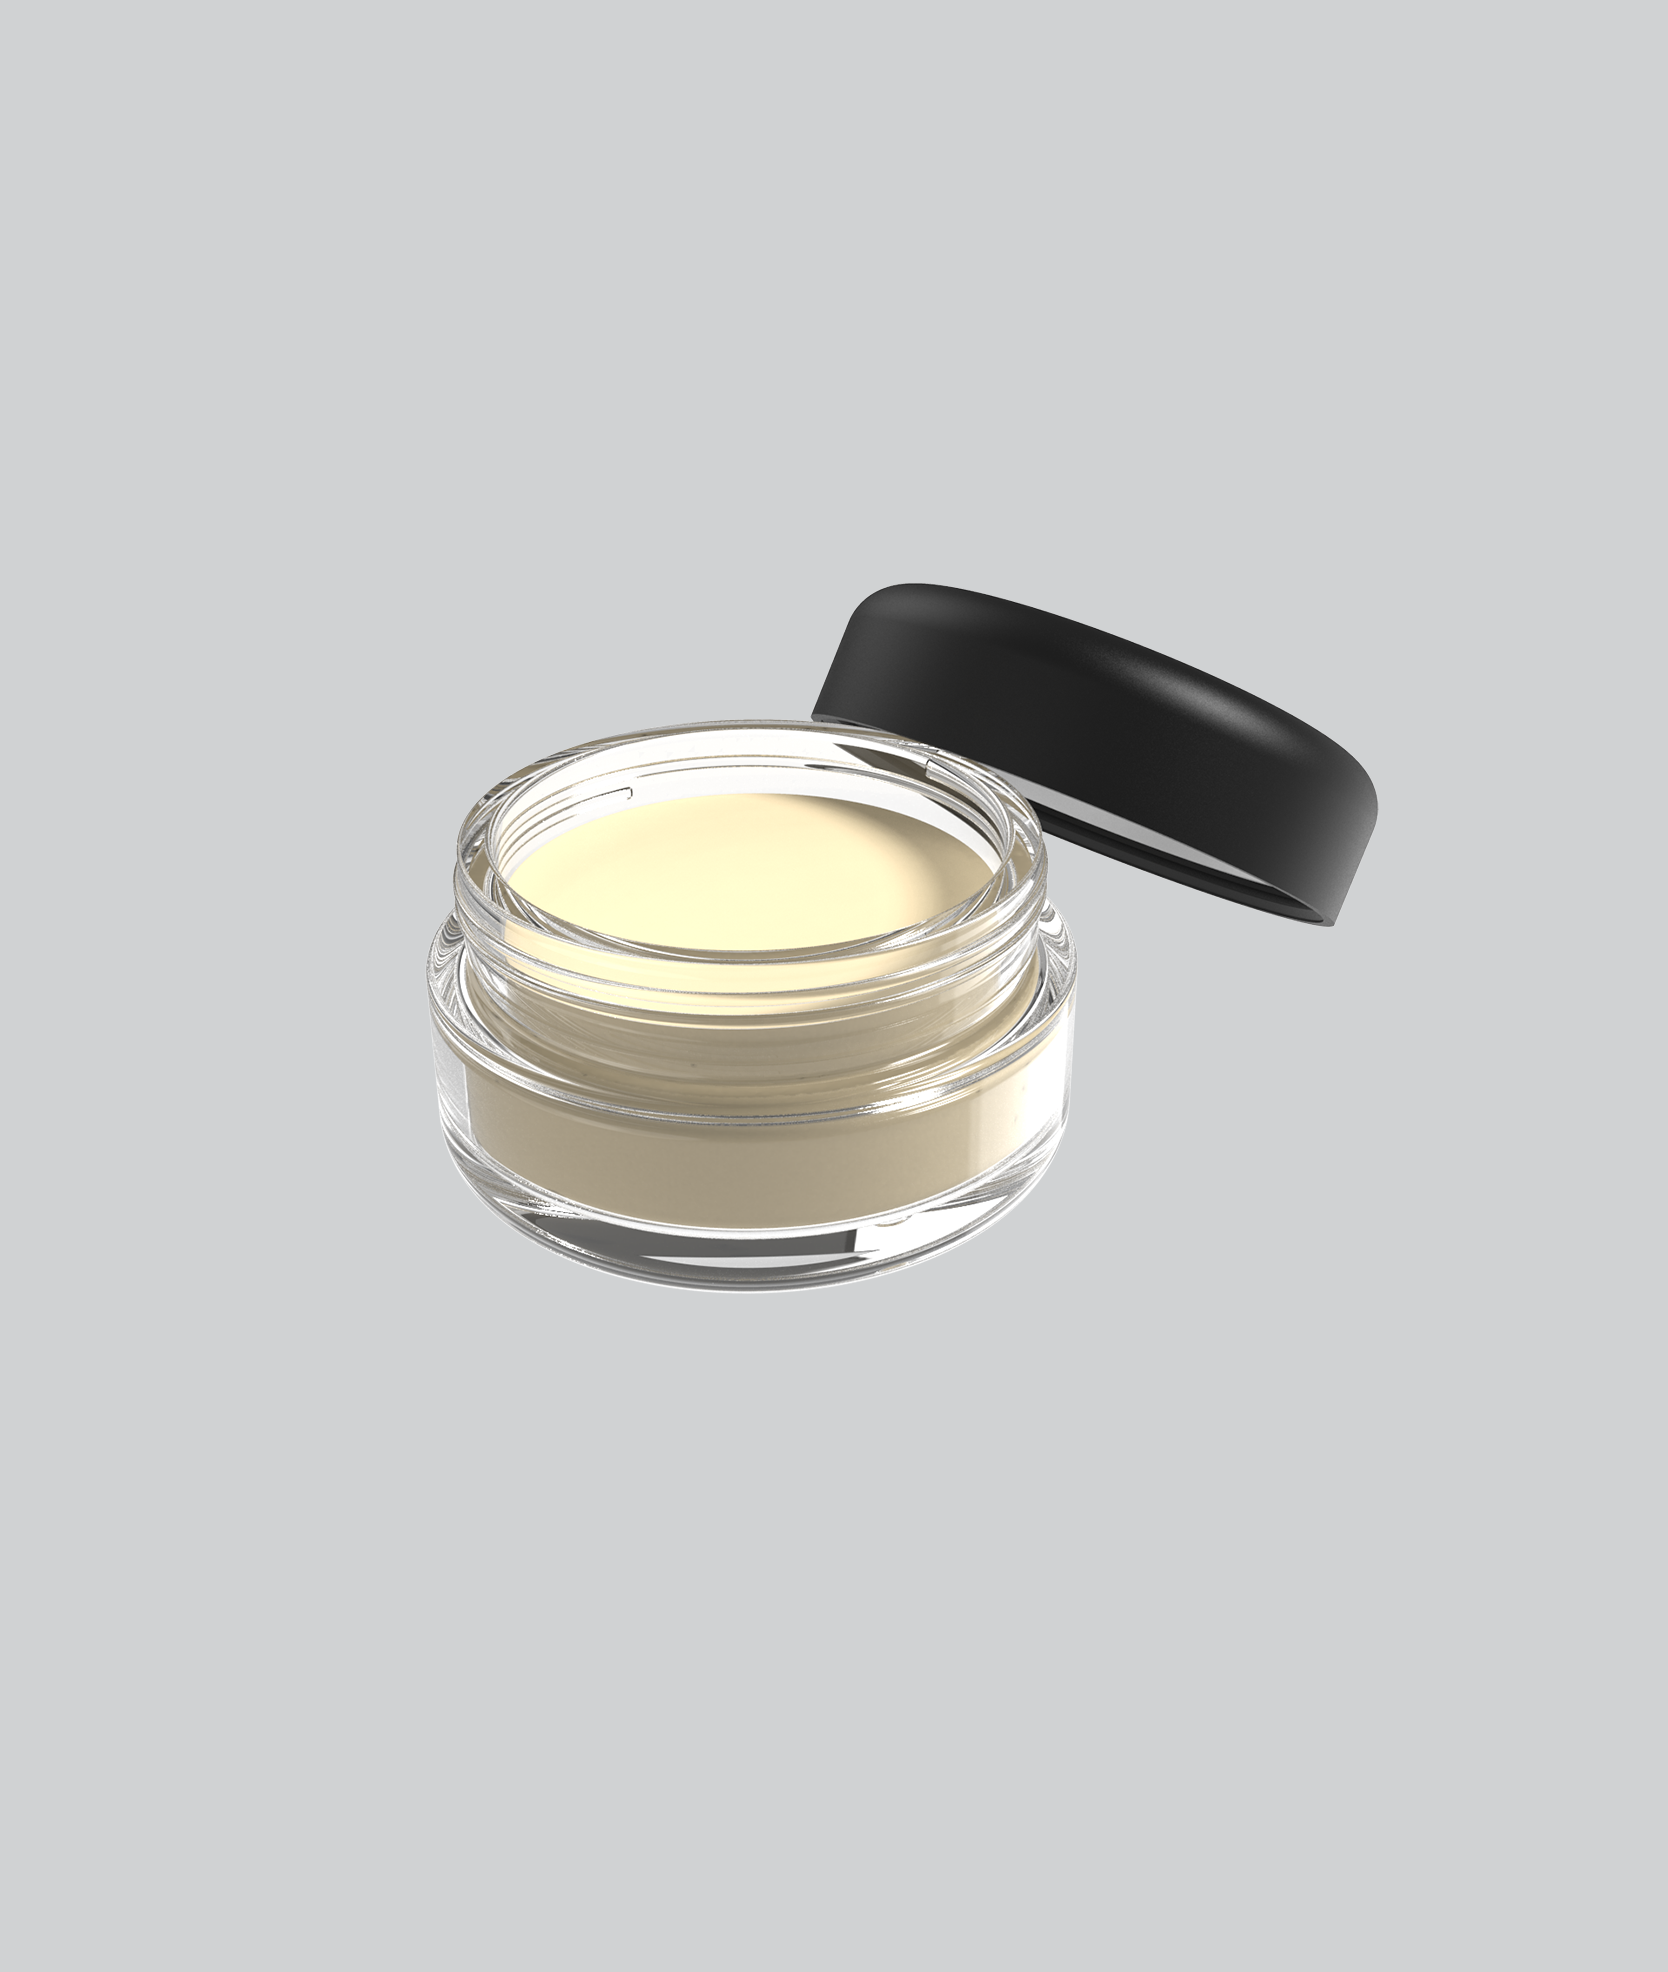 lopro-topical-opaque-jars